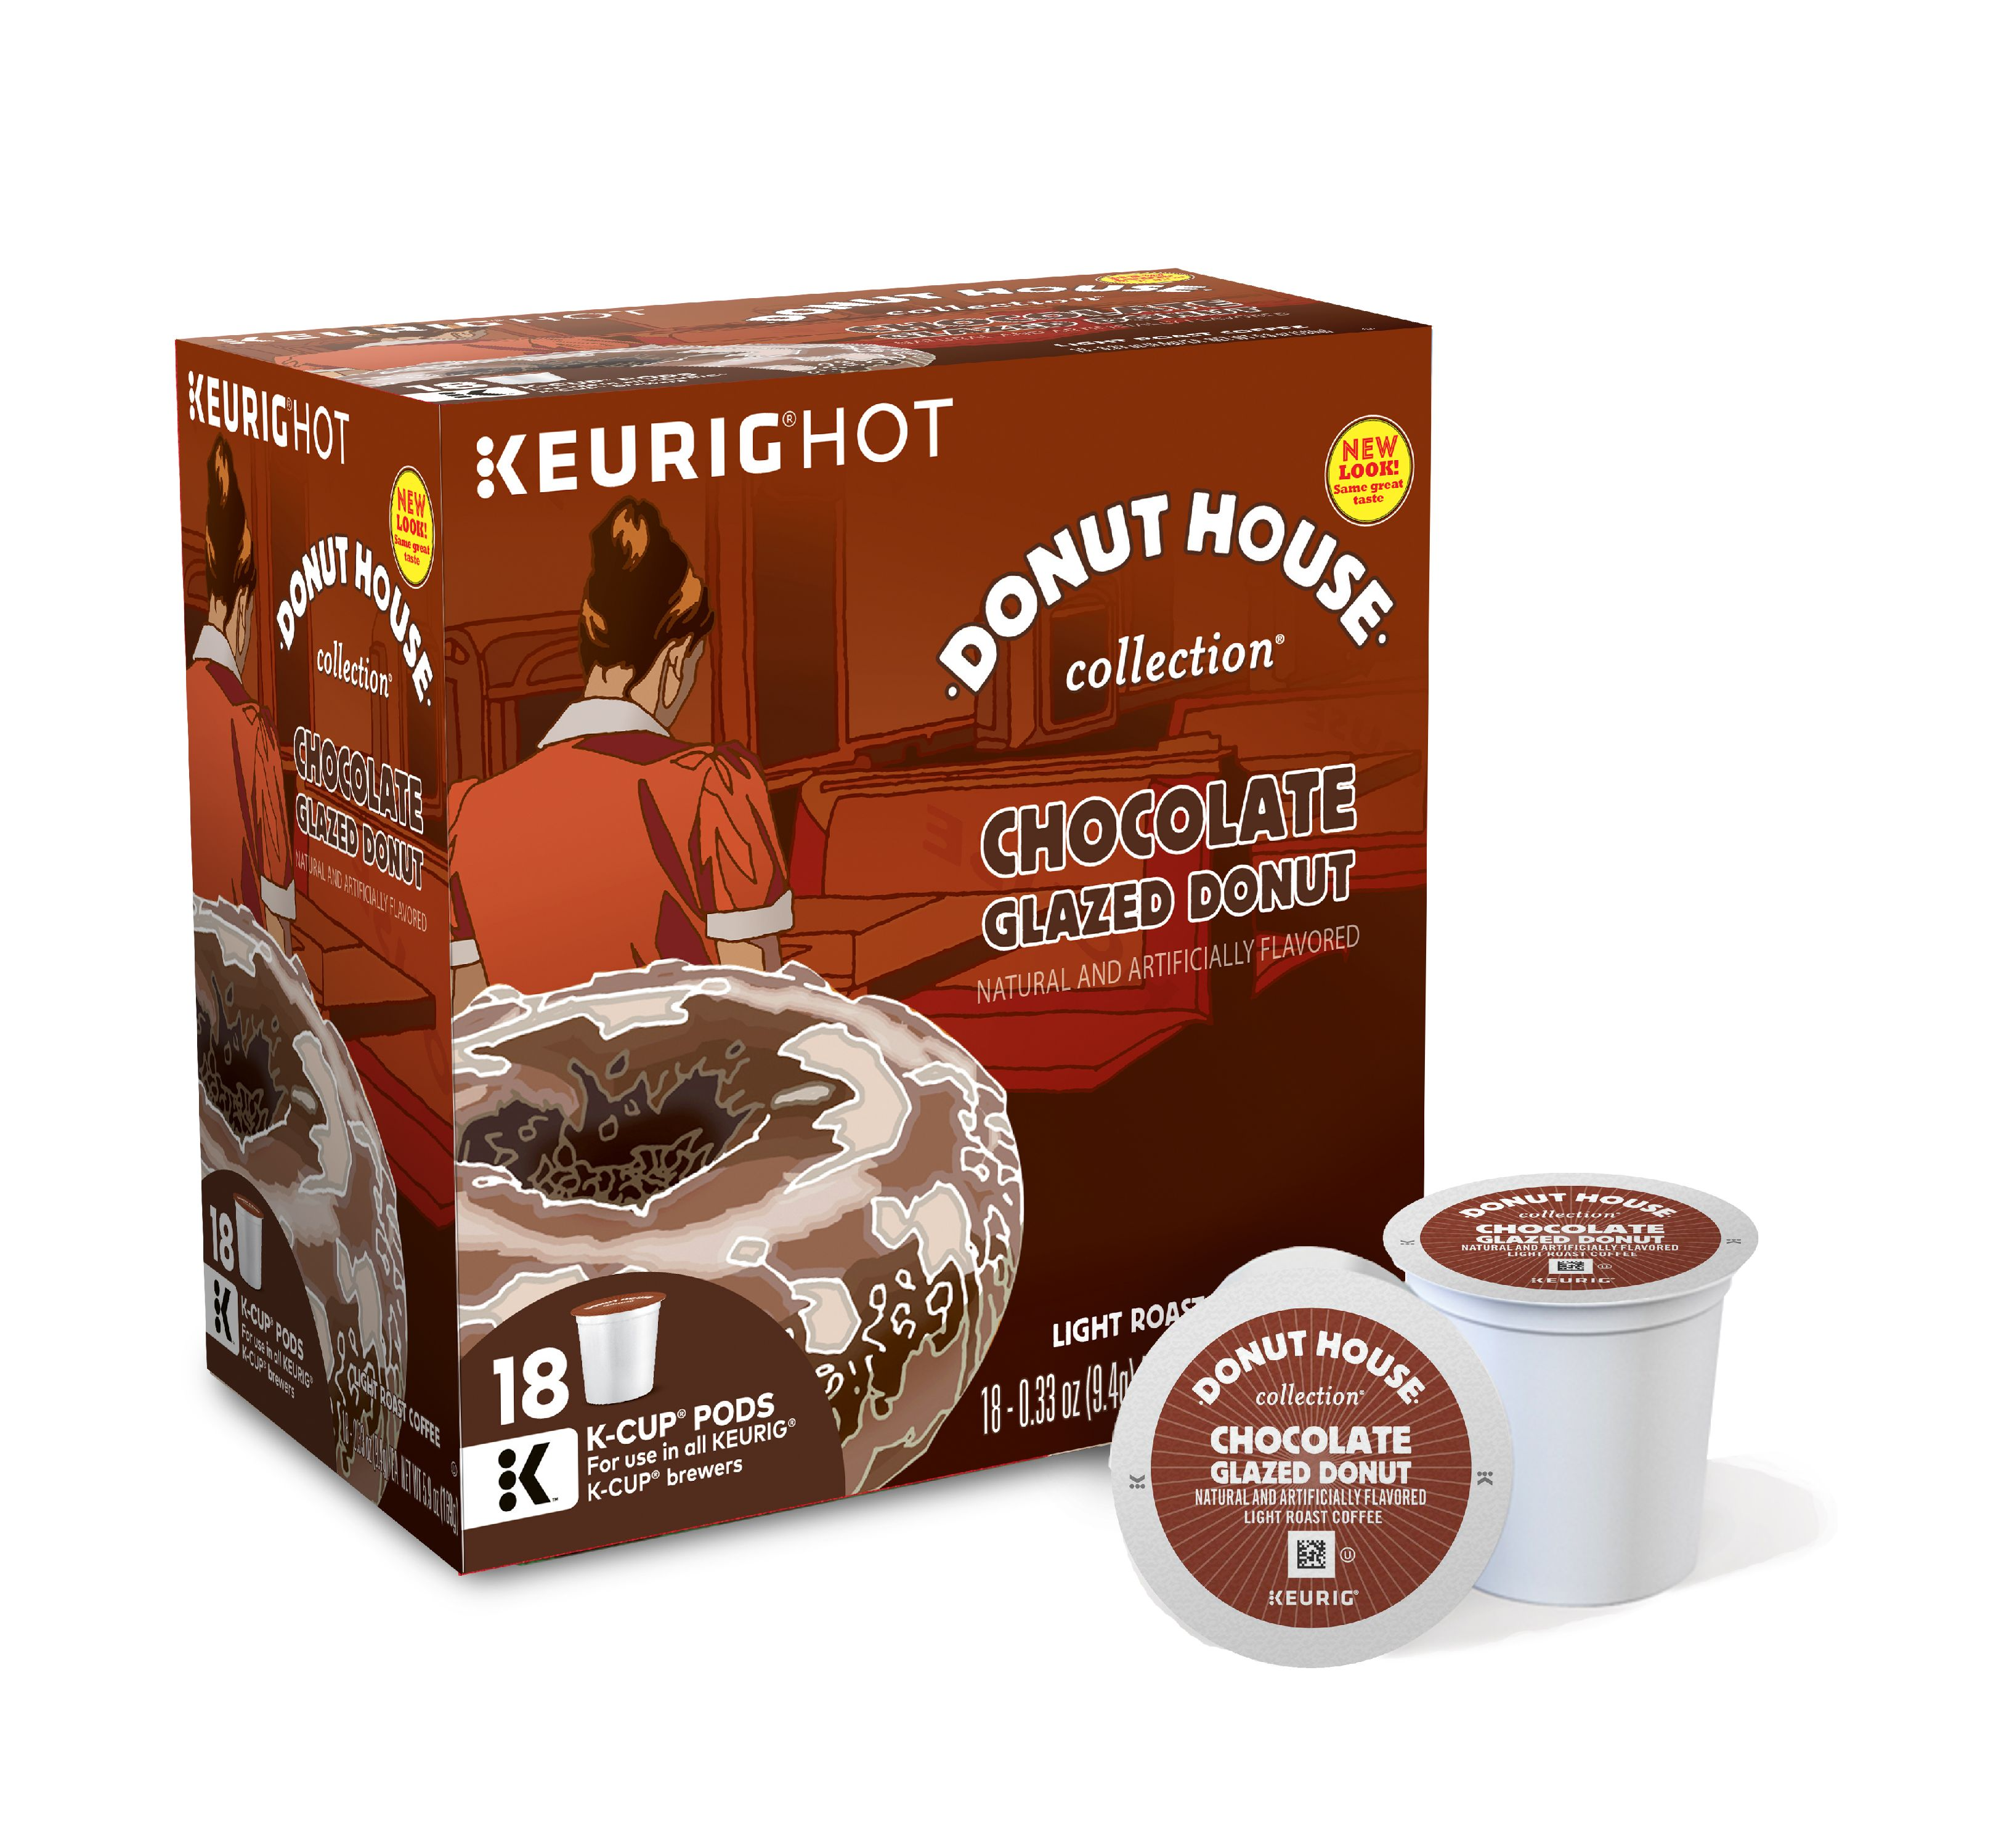 Donut House Collection Chocolate Glazed Donut Keurig Single-Serve K-Cup Pods, Light Roast